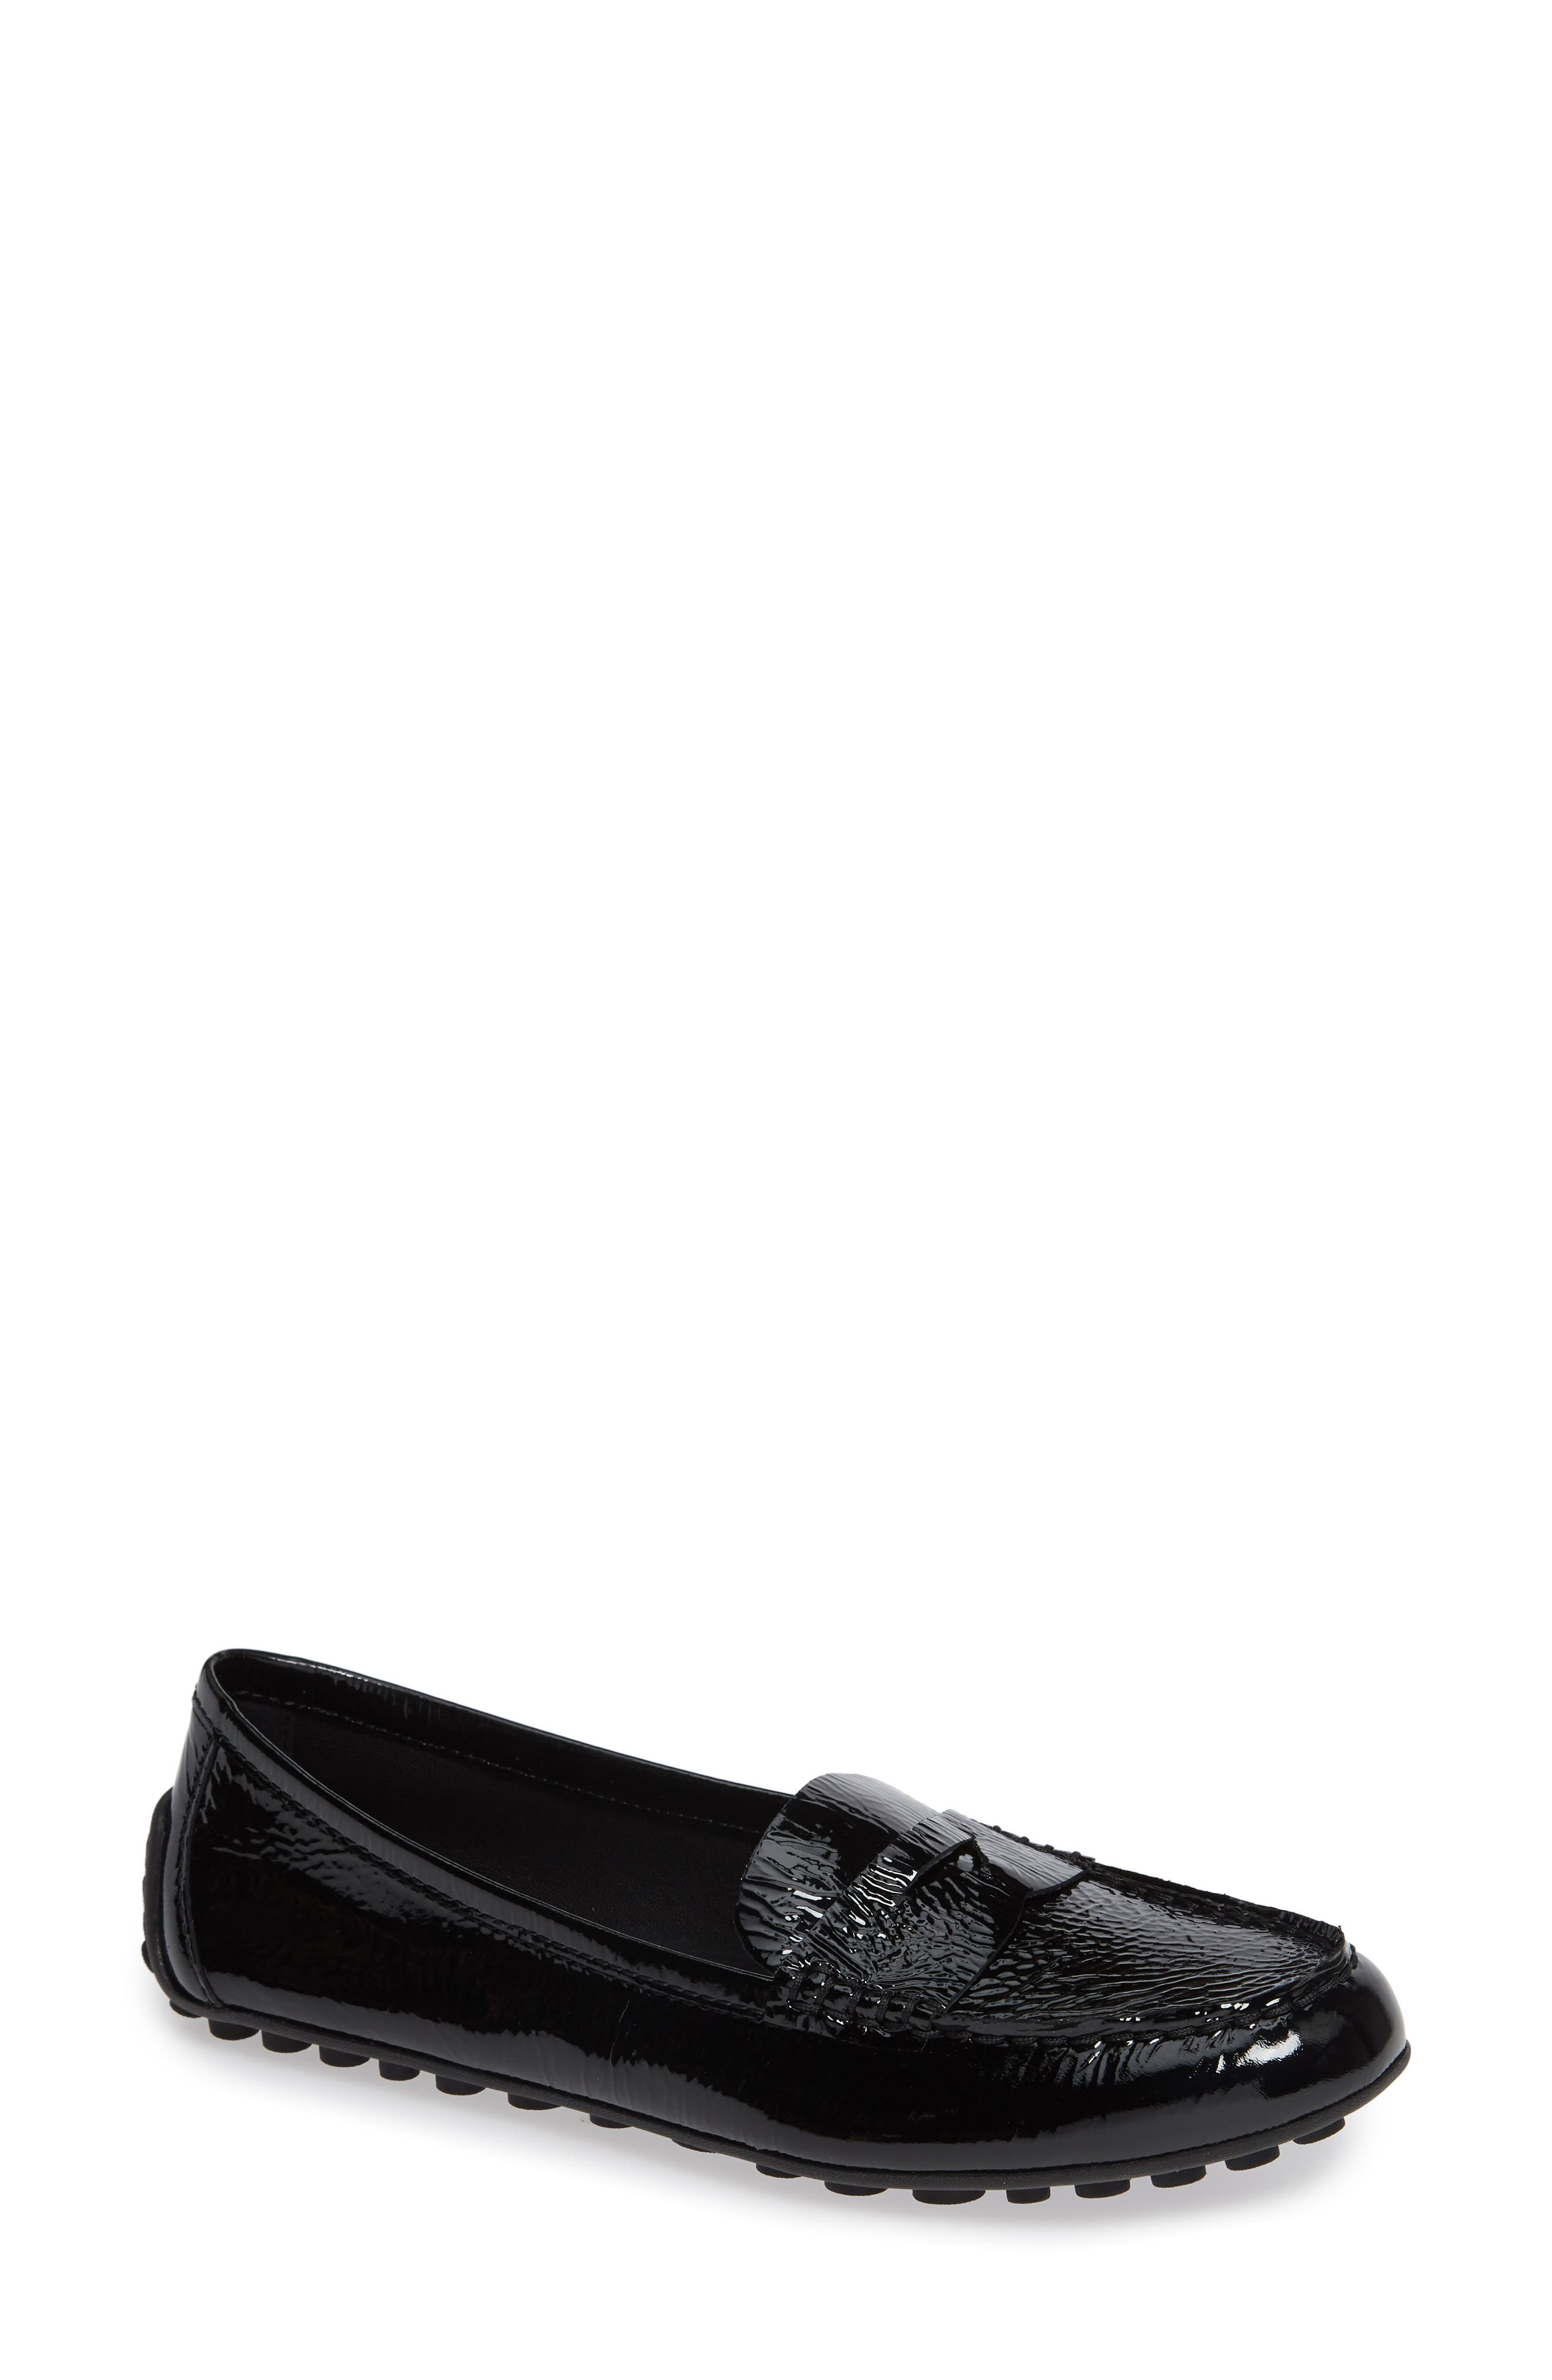 Malena Driving Loafer,                         Main,                         color, BLACK PATENT LEATHER